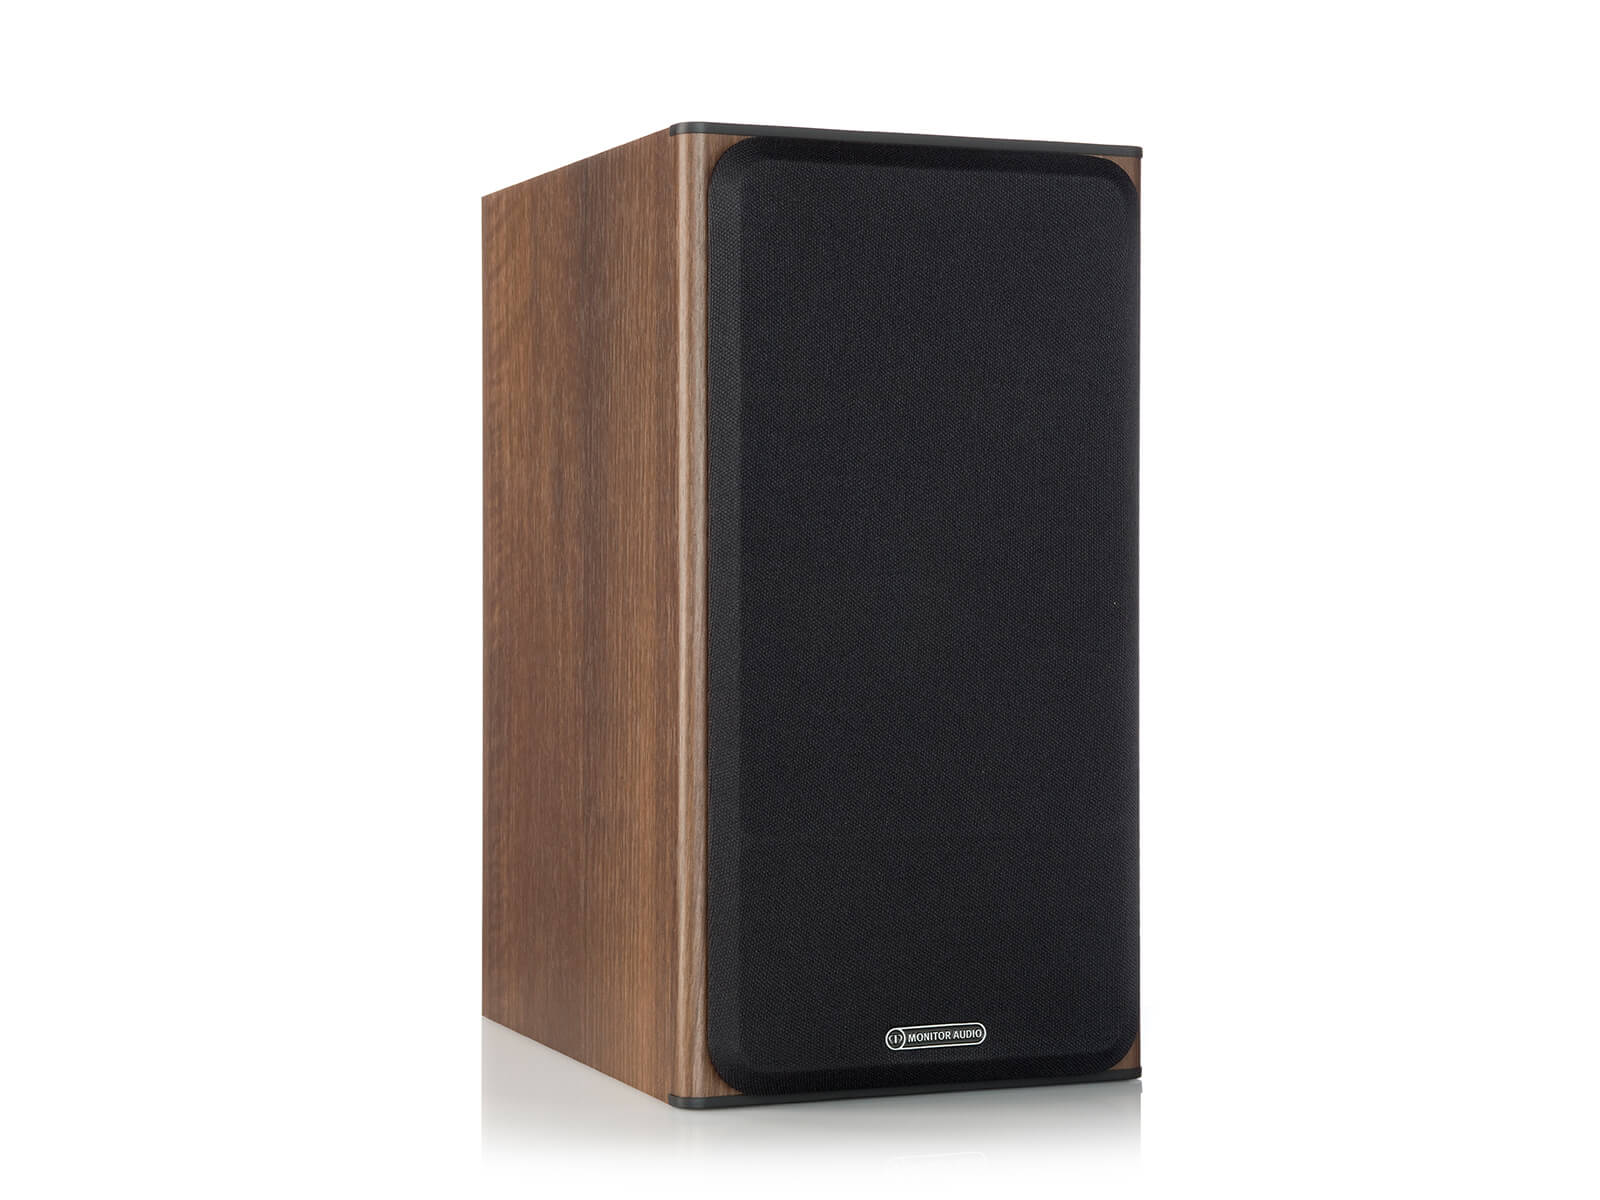 Bronze 2, bookshelf speakers, featuring a grille and a walnut vinyl finish.